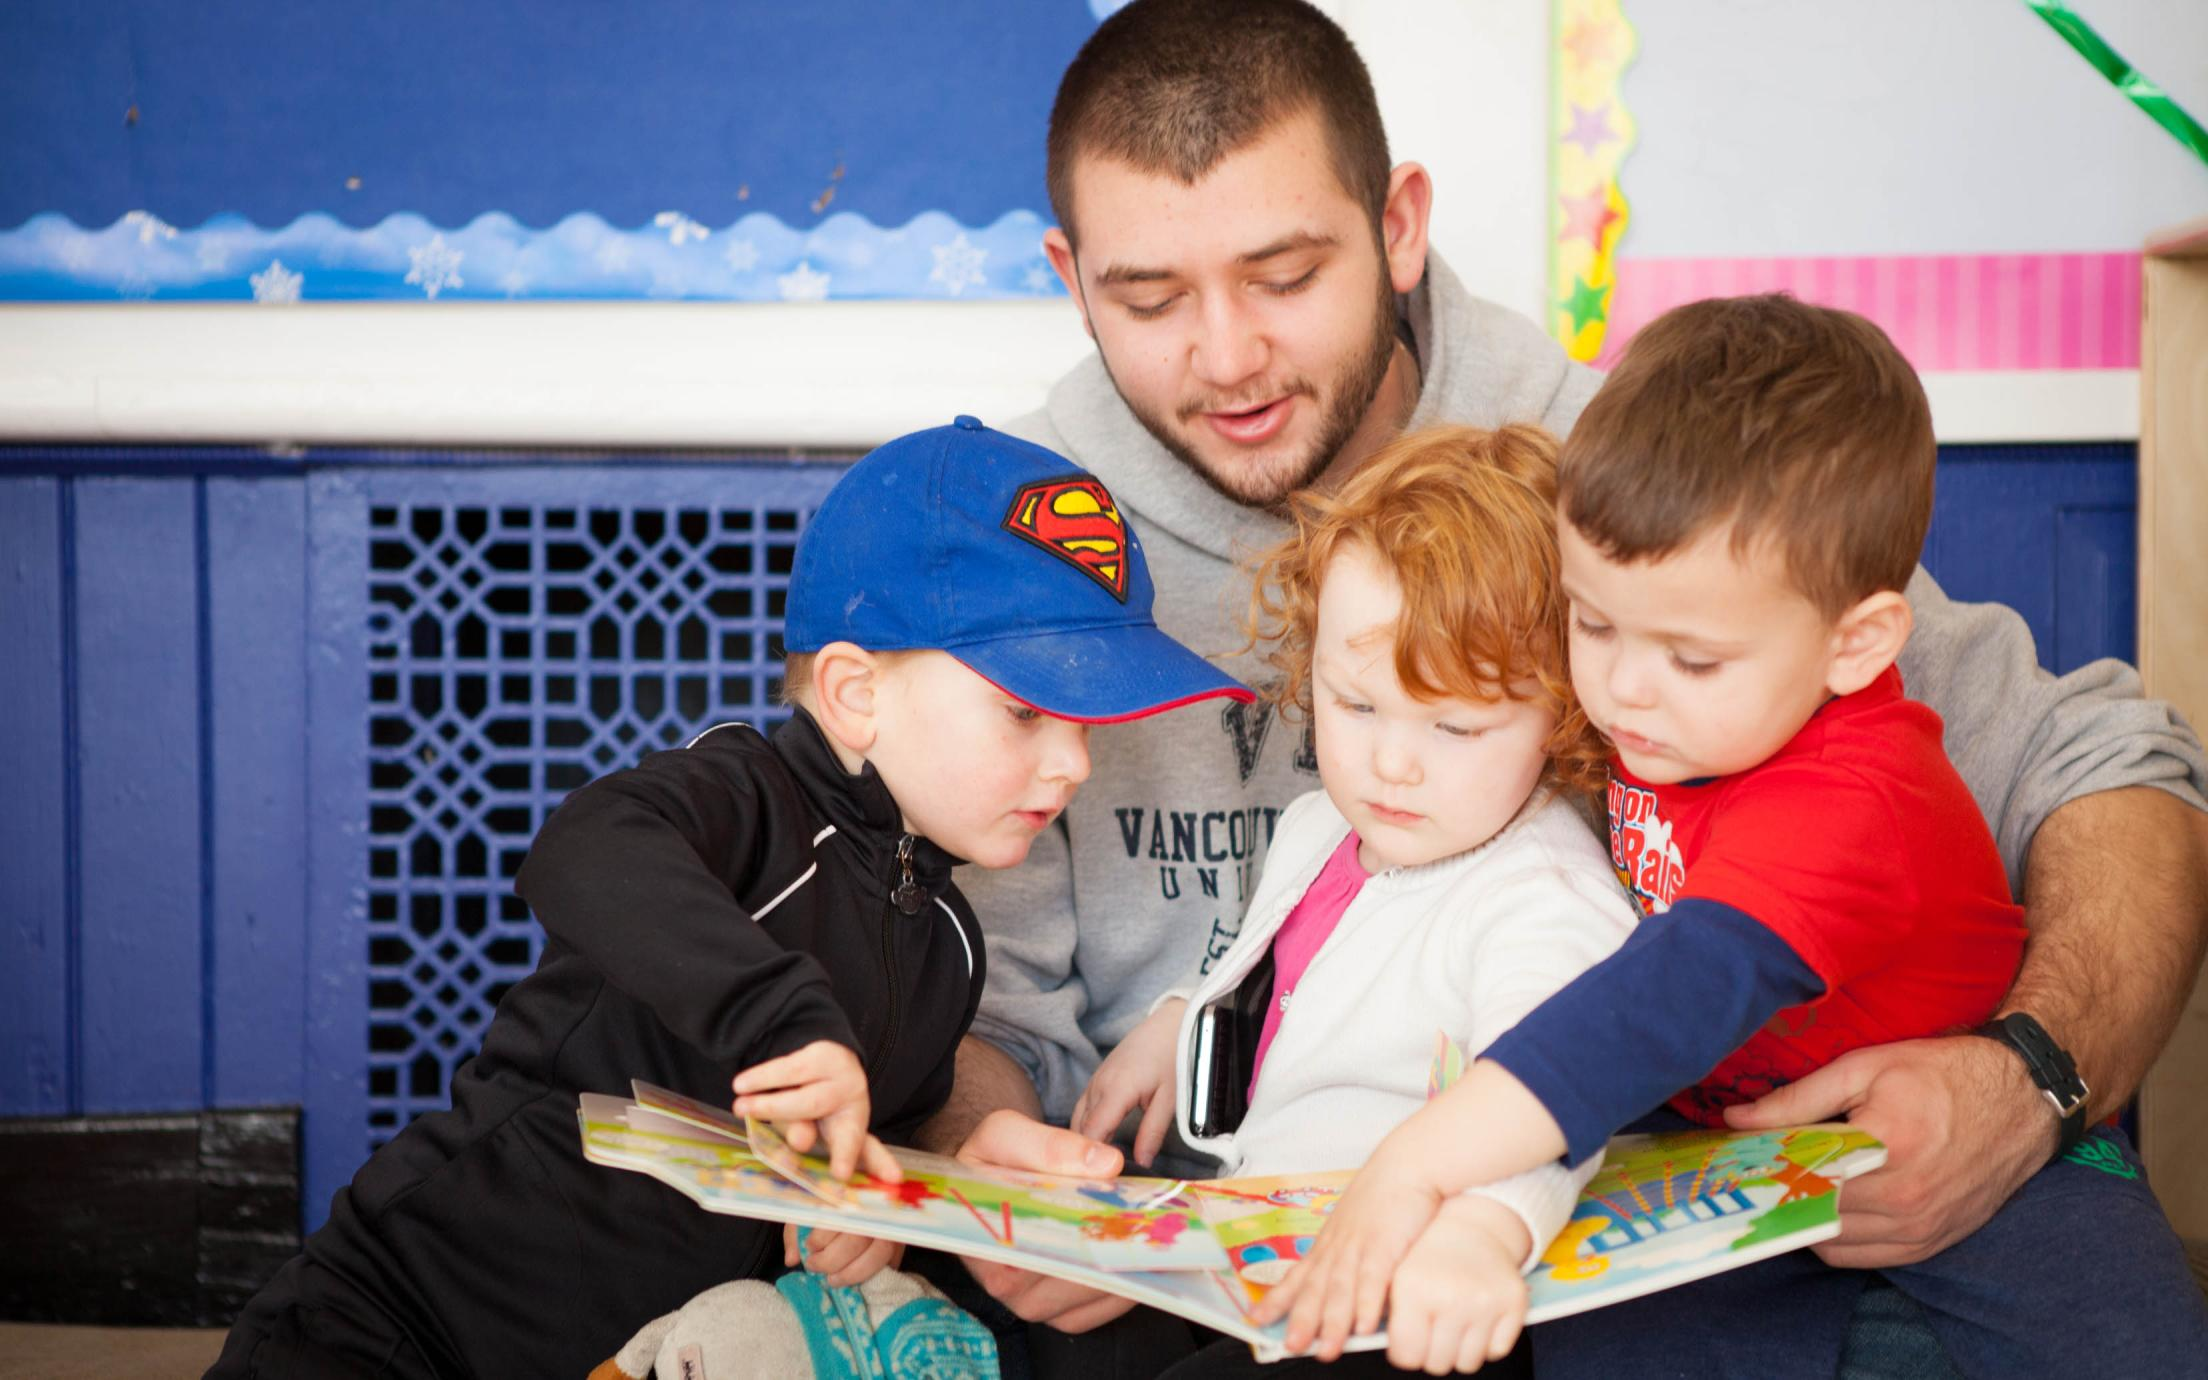 A graduate of the Child and Youth Care program is reading to kids at a family child services center